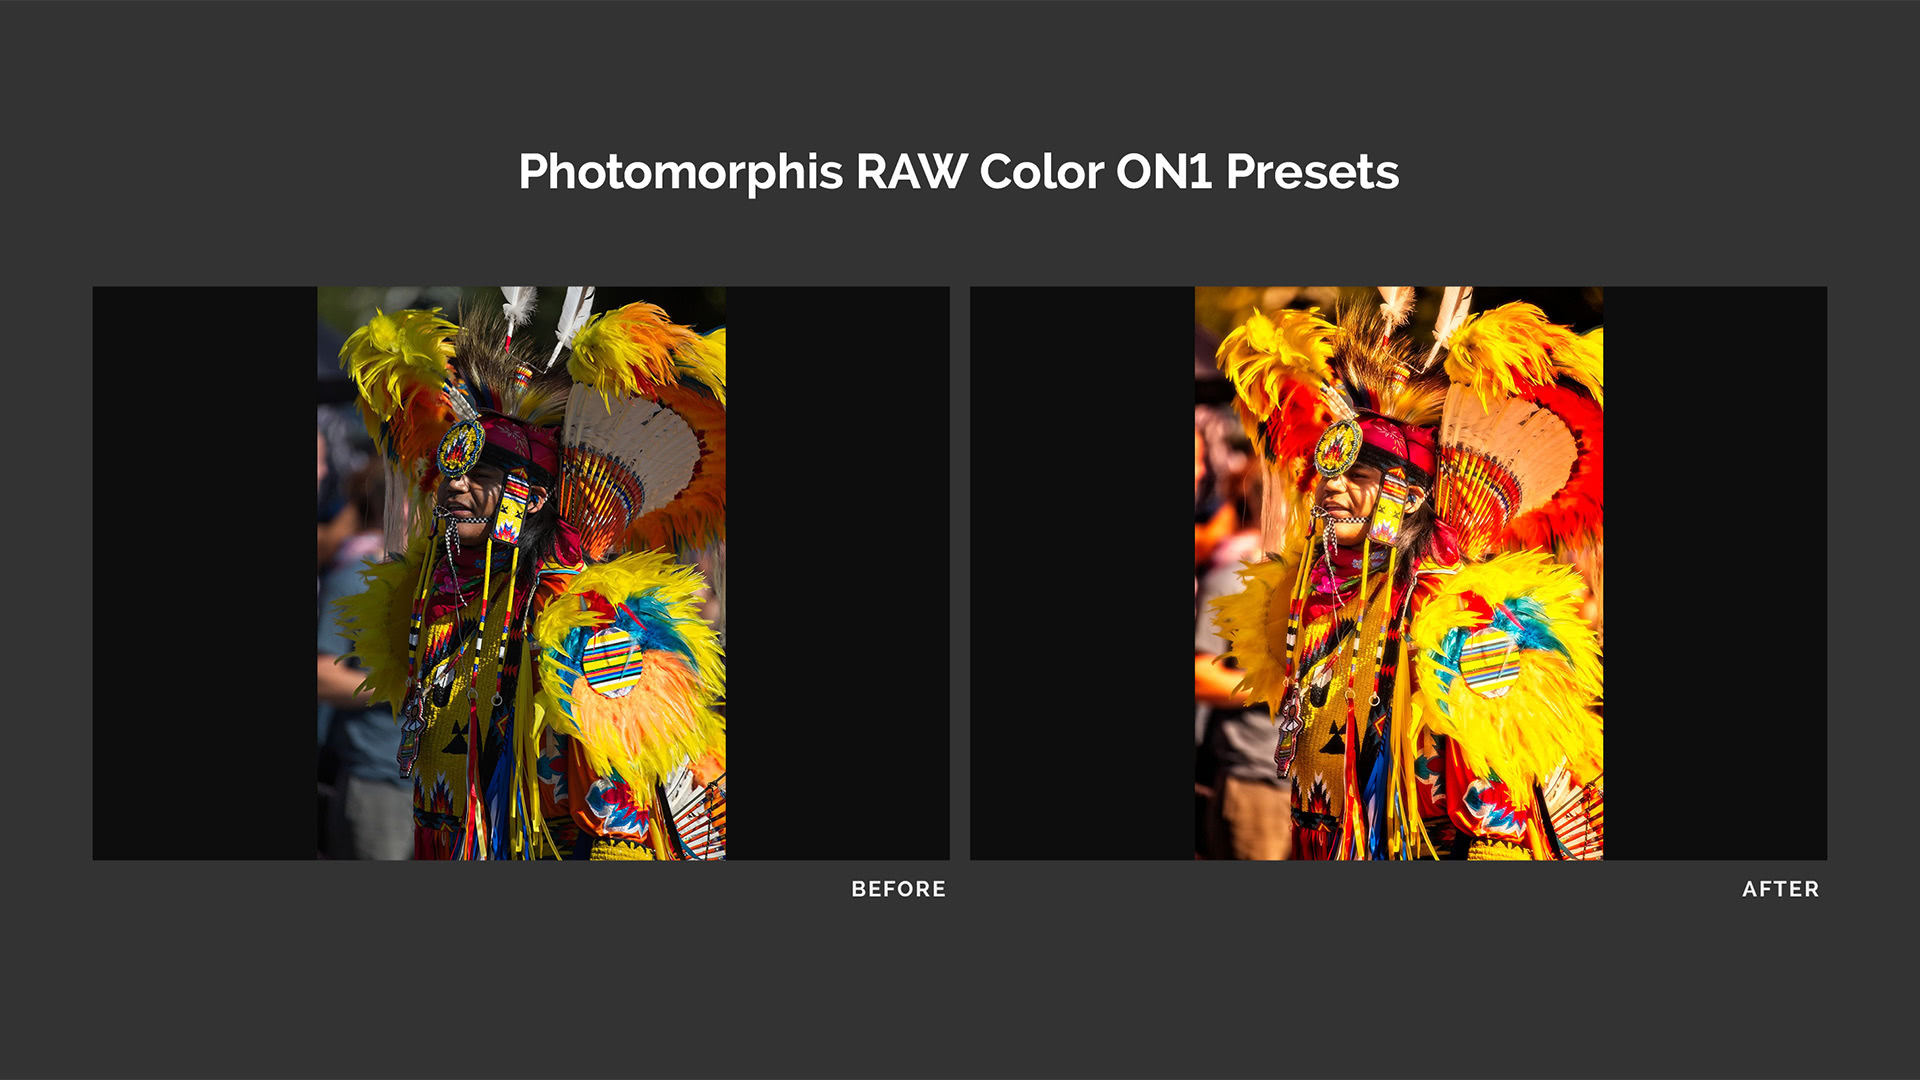 ON1 Photo Kit – The Expert Guide to Layers and Masking by